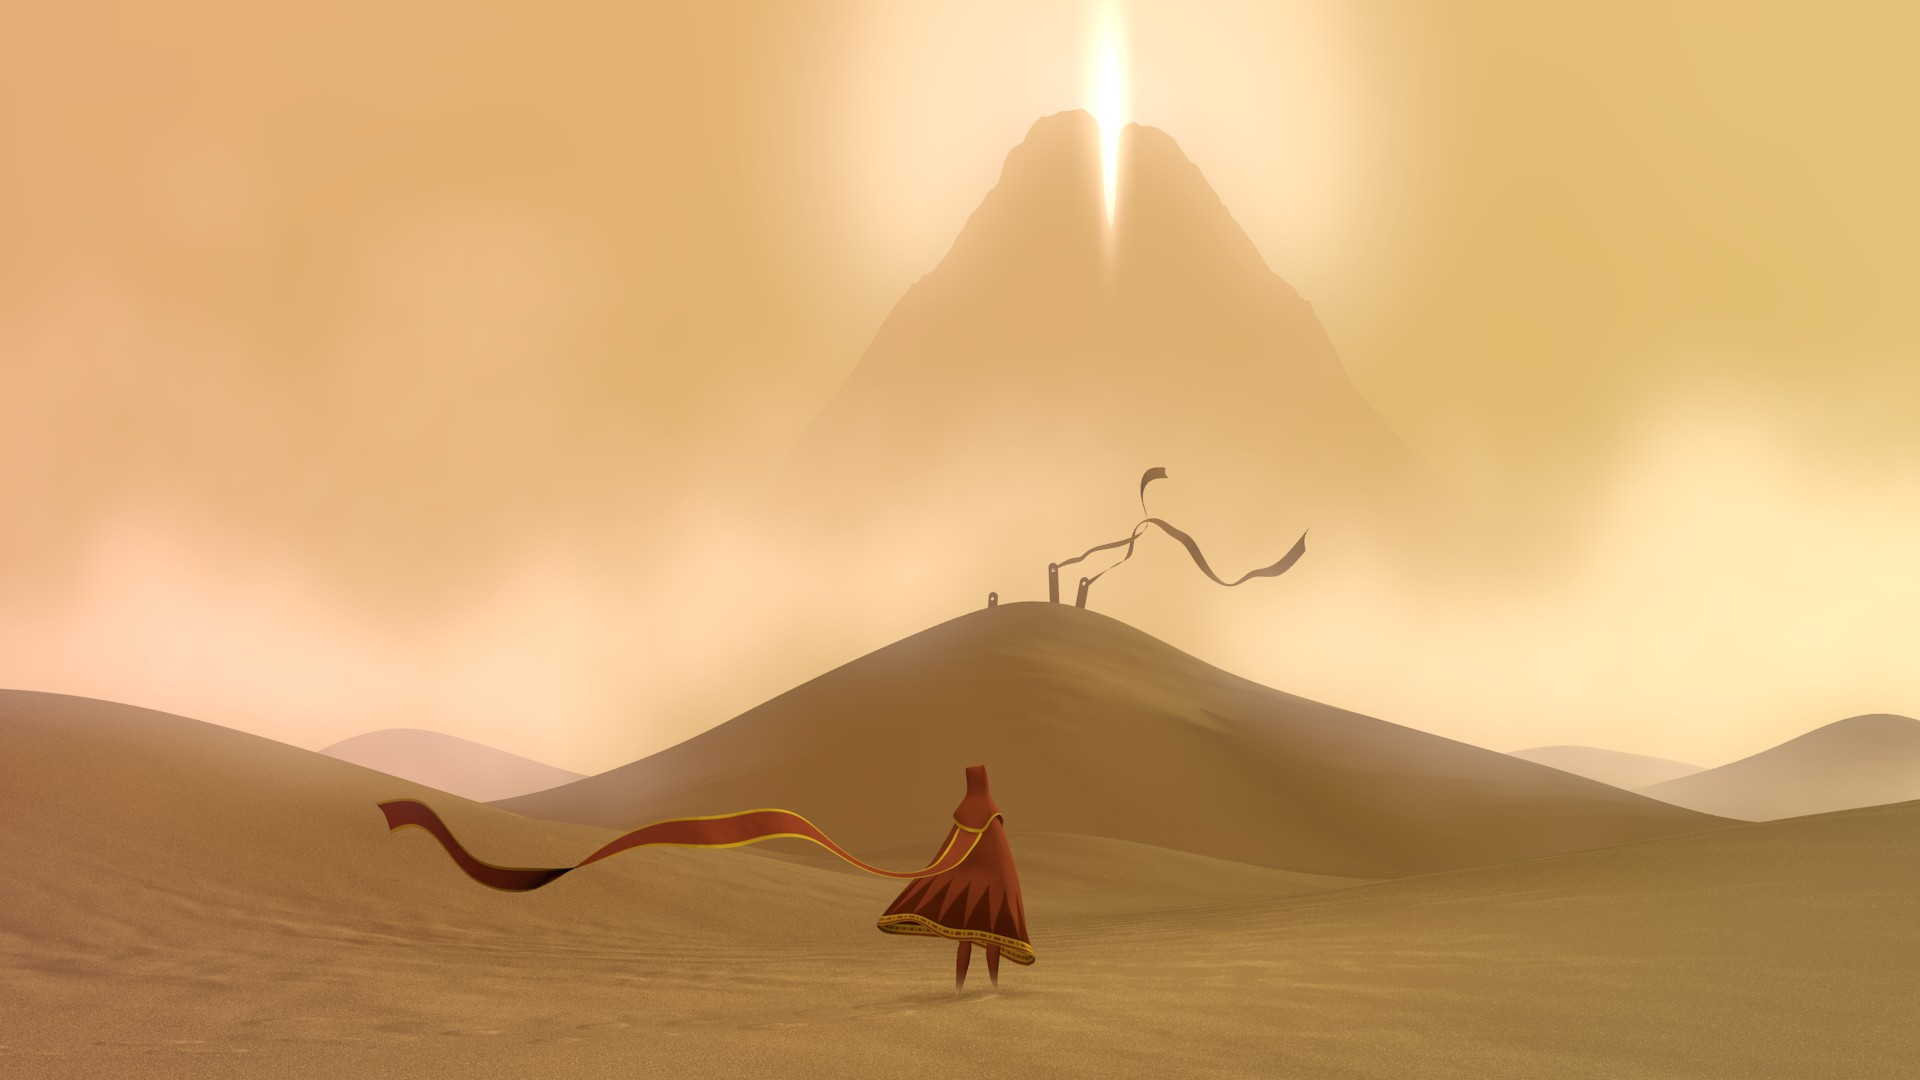 Love Journey Wallpaper : journey game desktop wallpaper - HD Desktop Wallpapers 4k HD